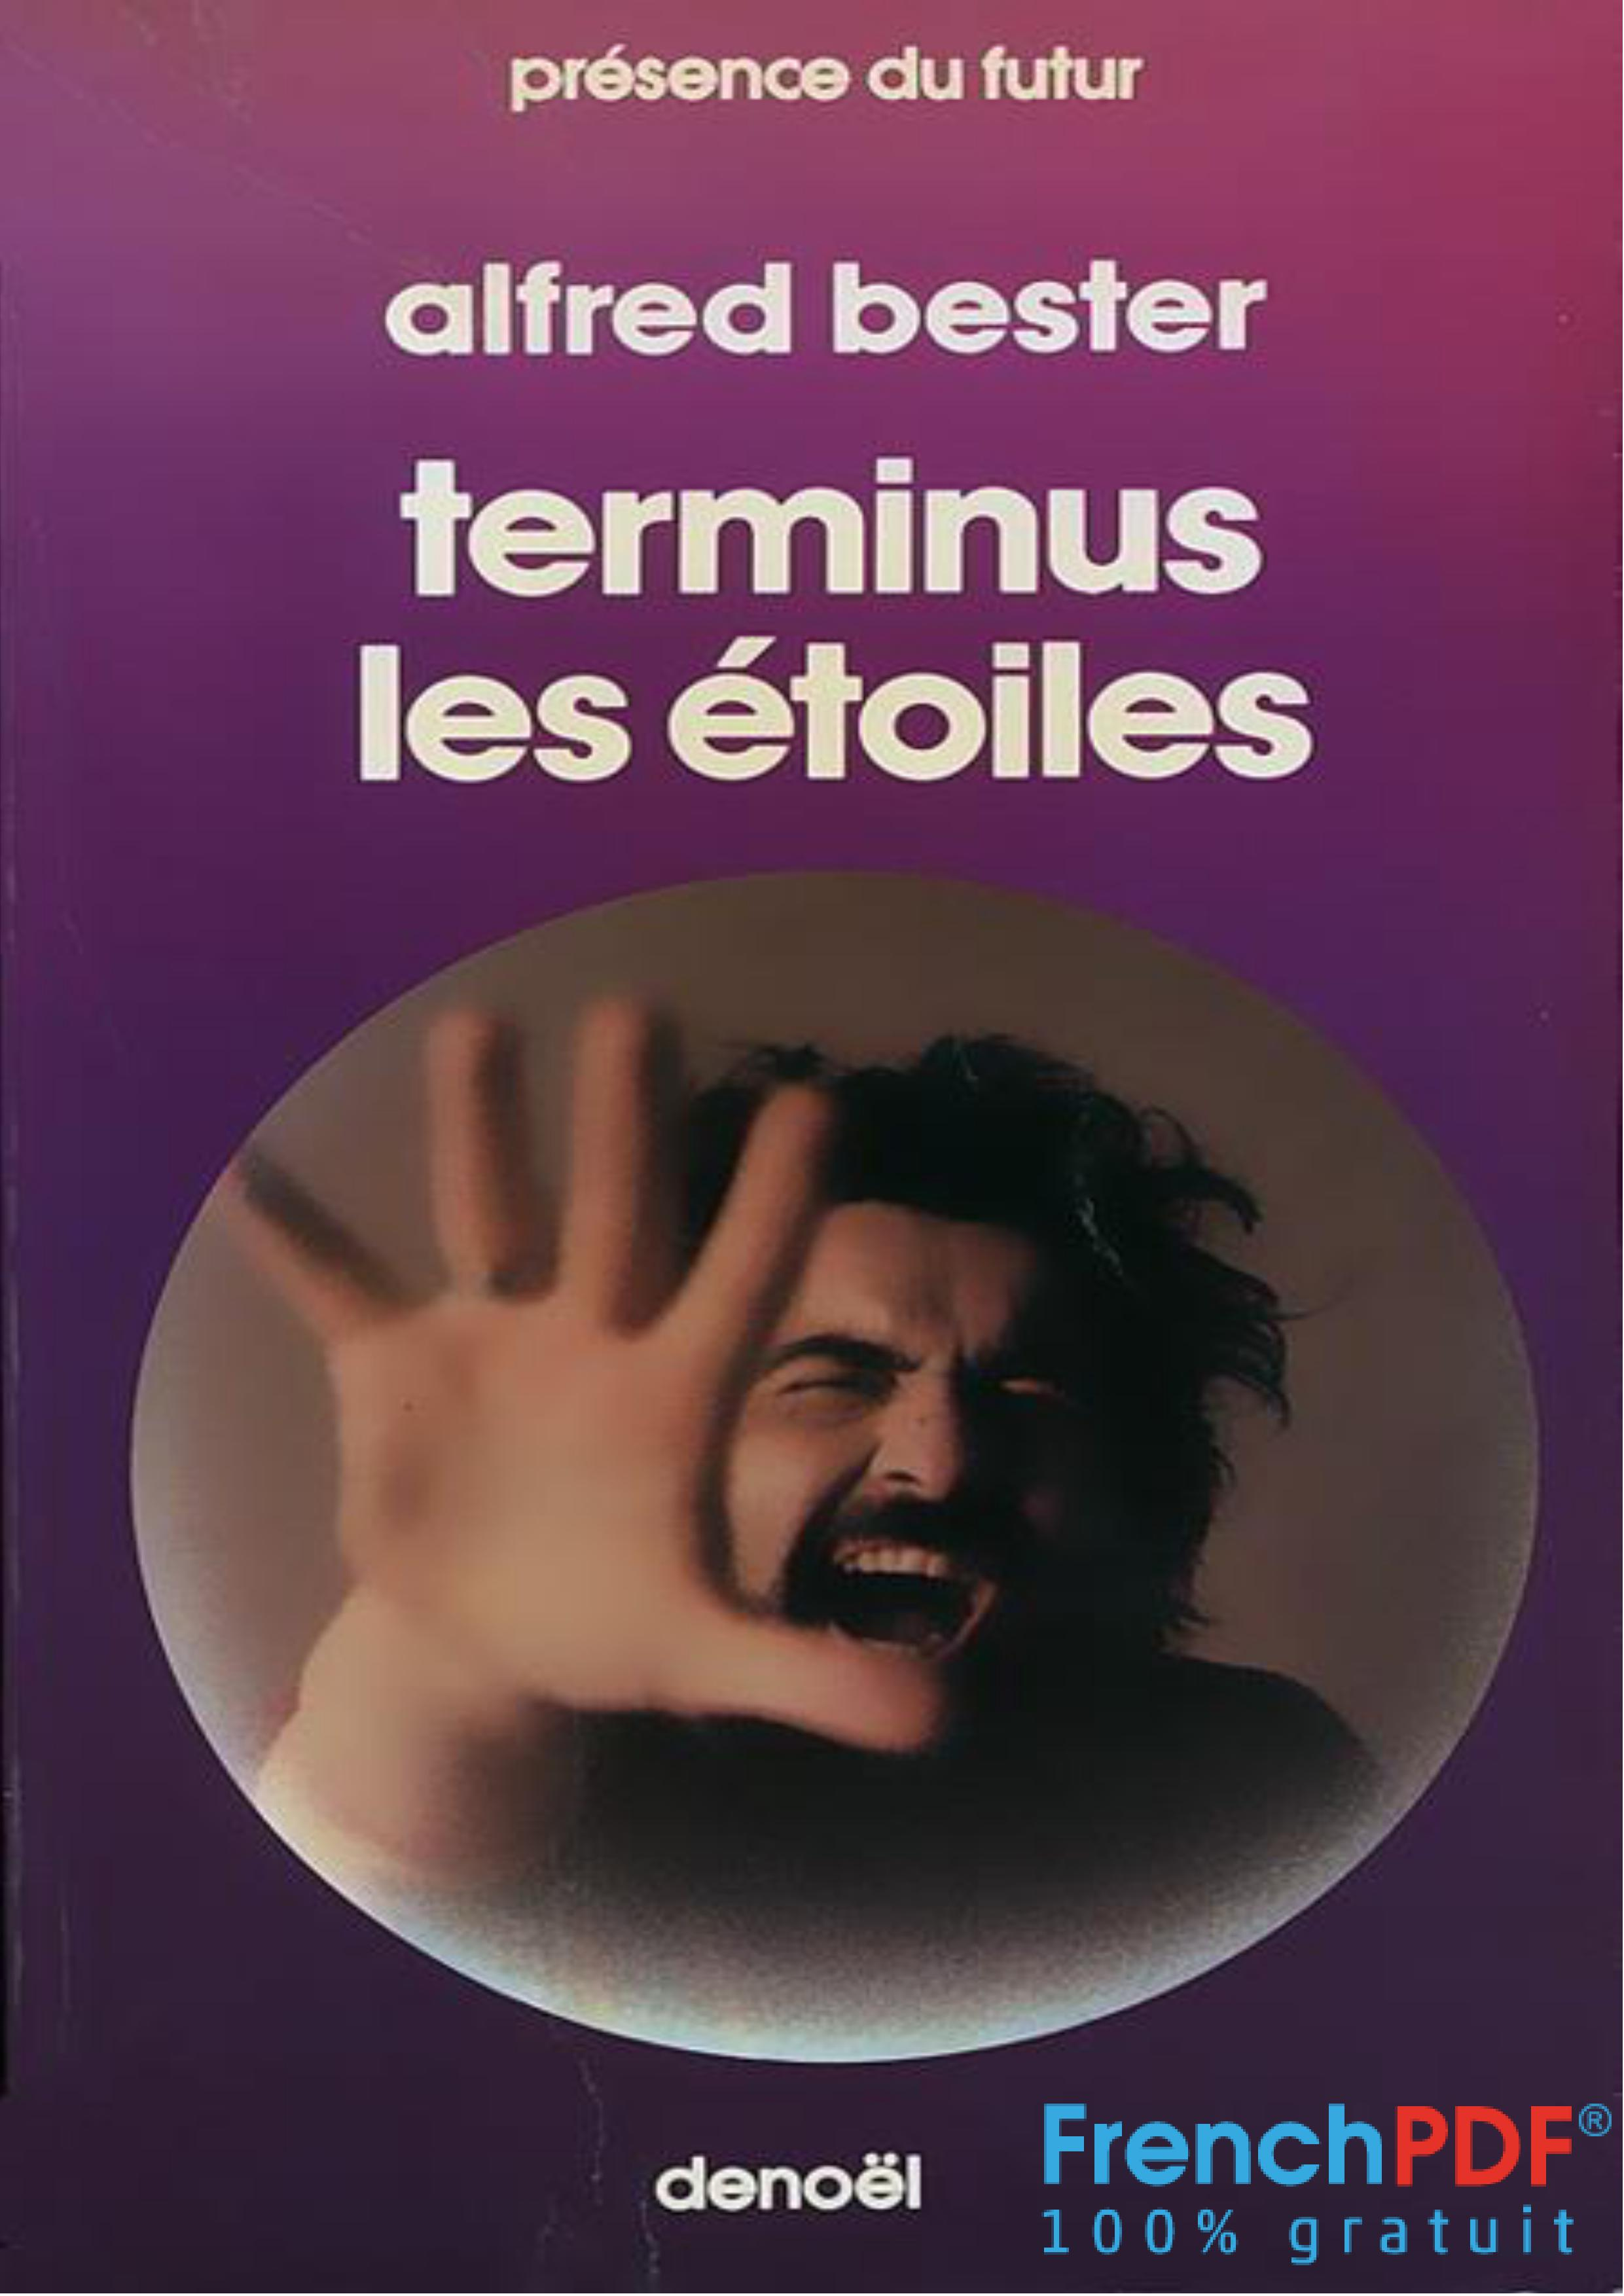 Terminus, les étoiles - Alfred Bester - FrenchPDF.com